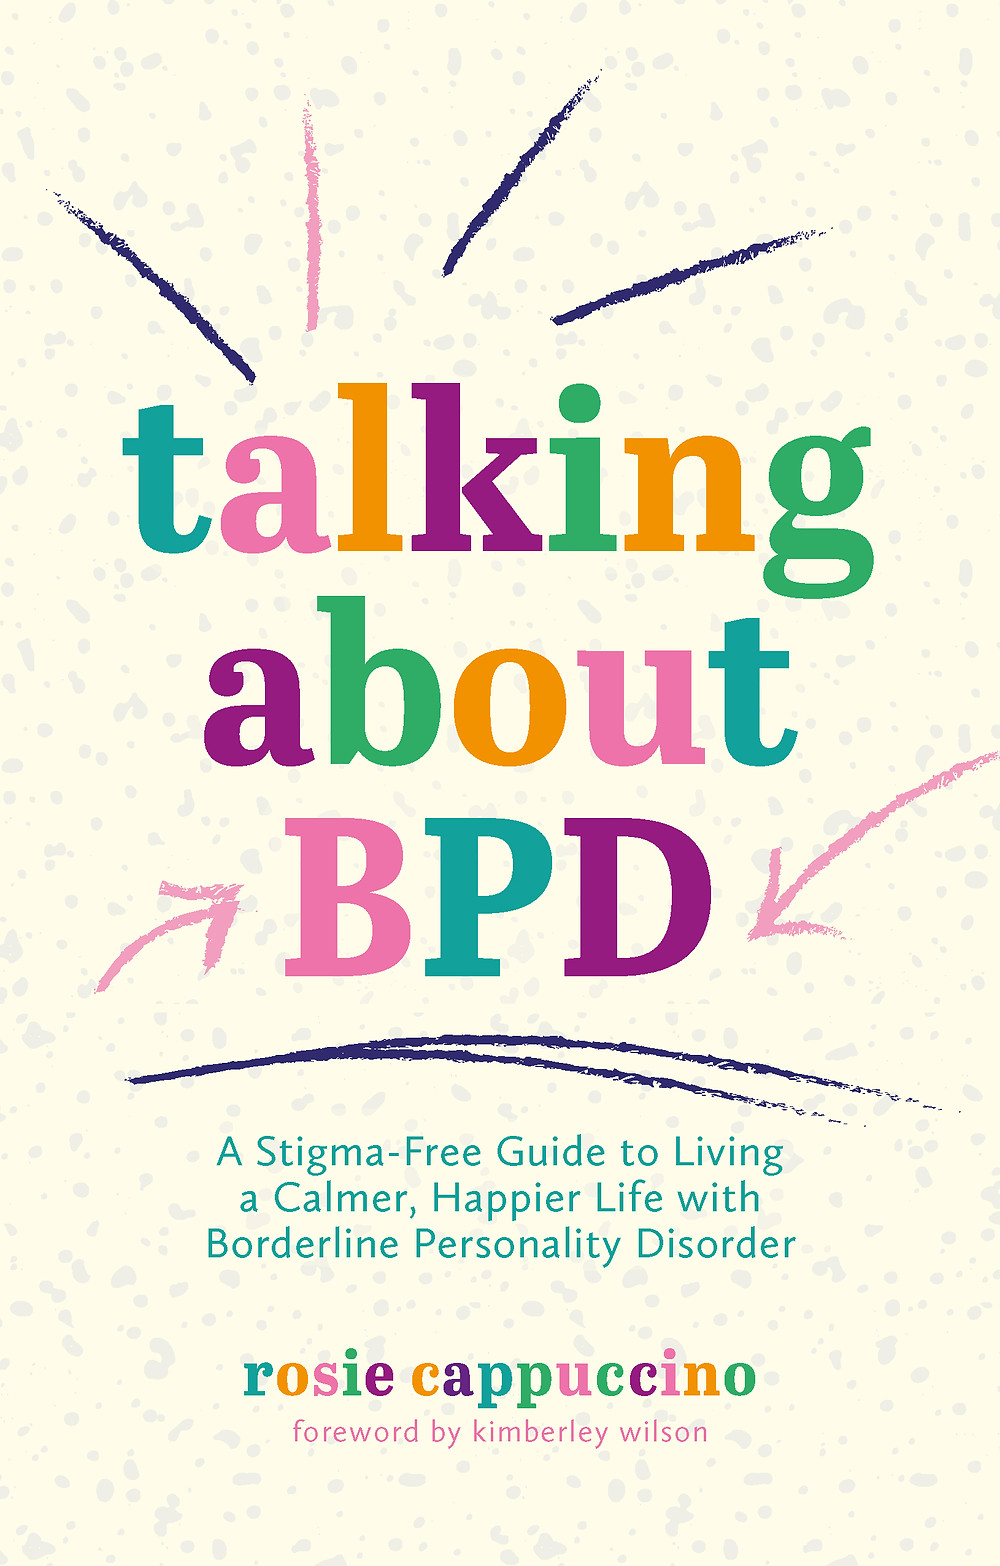 Book cover image. Title is 'talking about bpdL a stigma free guide to living a calmer and happier life with borderline personality disorder by Rosie Cappuccino, foreword by Kimberley Wilson. The colours of the text are purple, orange, pink and green. The background is pale yellow with grey dots.